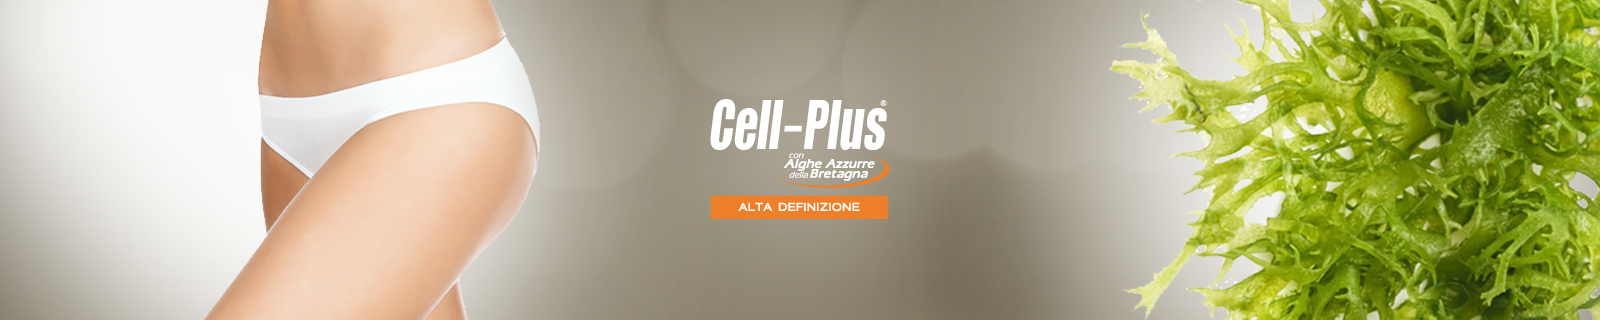 Cell-Plus Alta Definizione